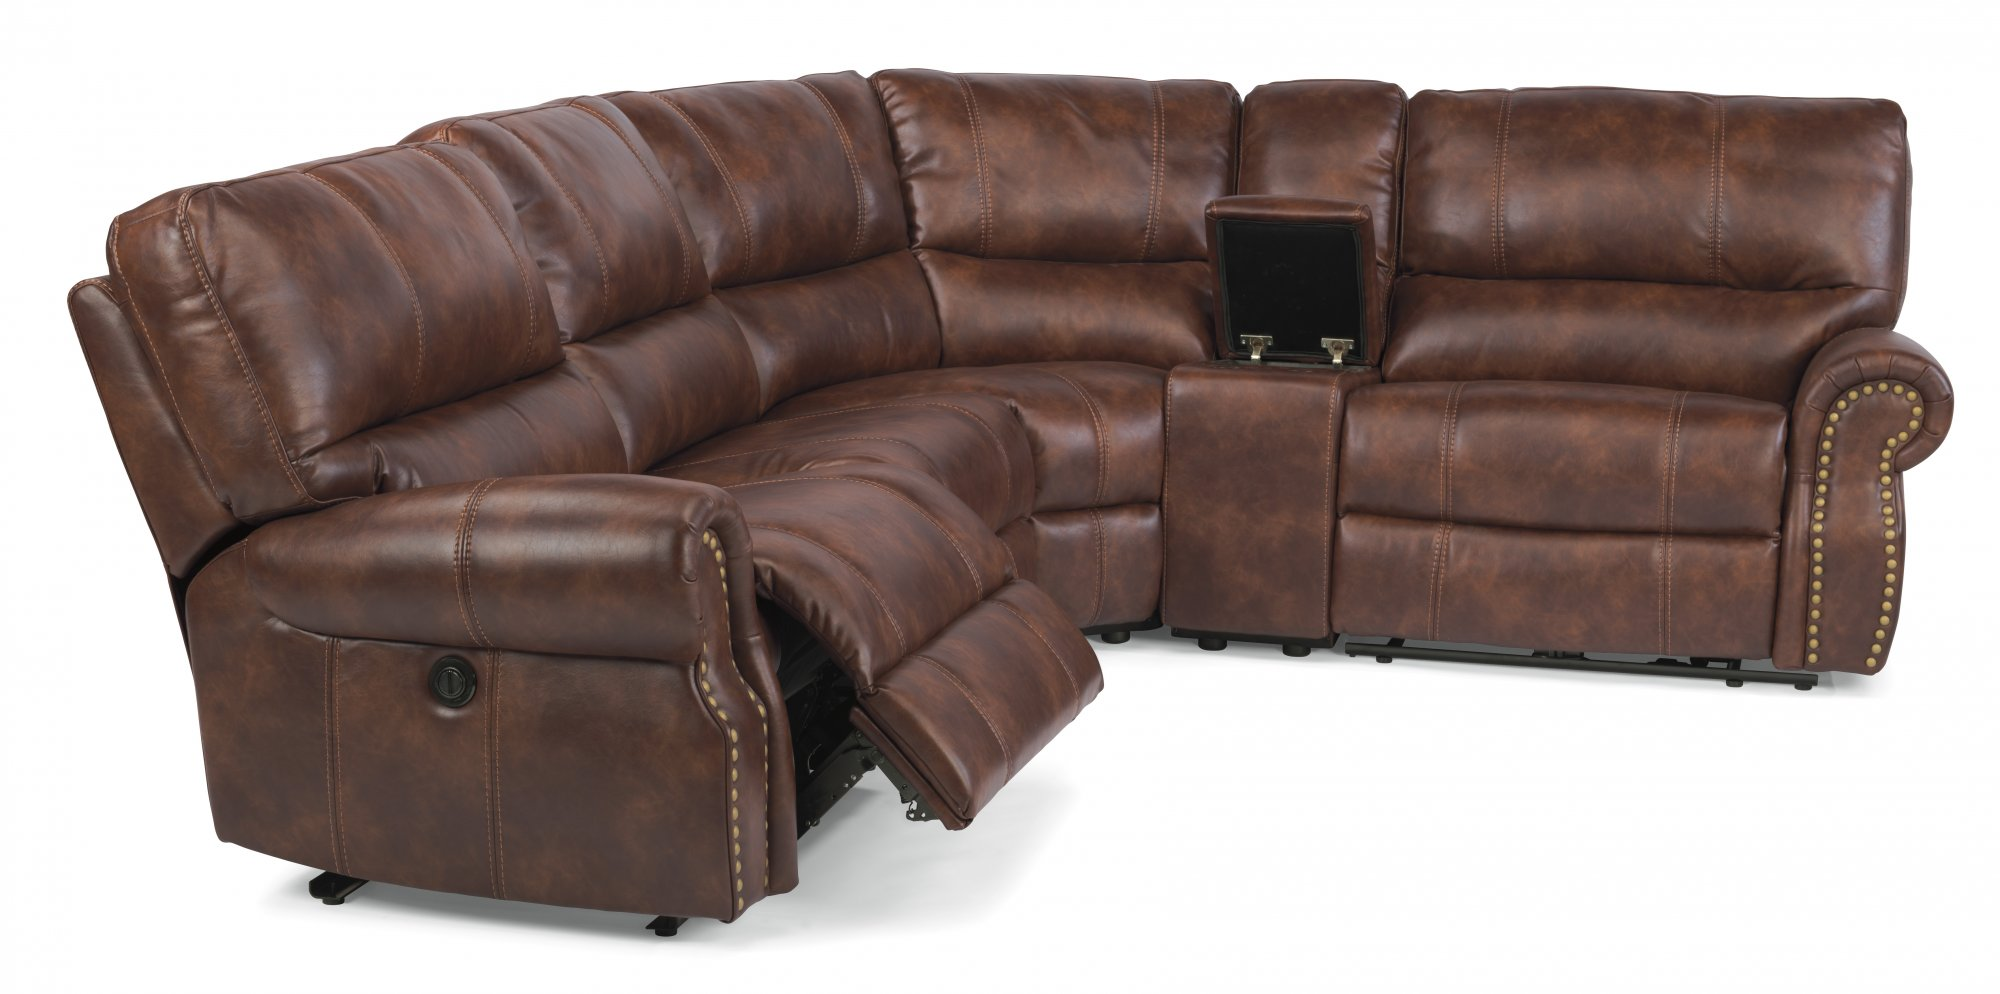 Fabric Power Reclining Sectional  sc 1 st  Flexsteel & Sectional Couches and Sofas | Flexsteel Sectionals islam-shia.org